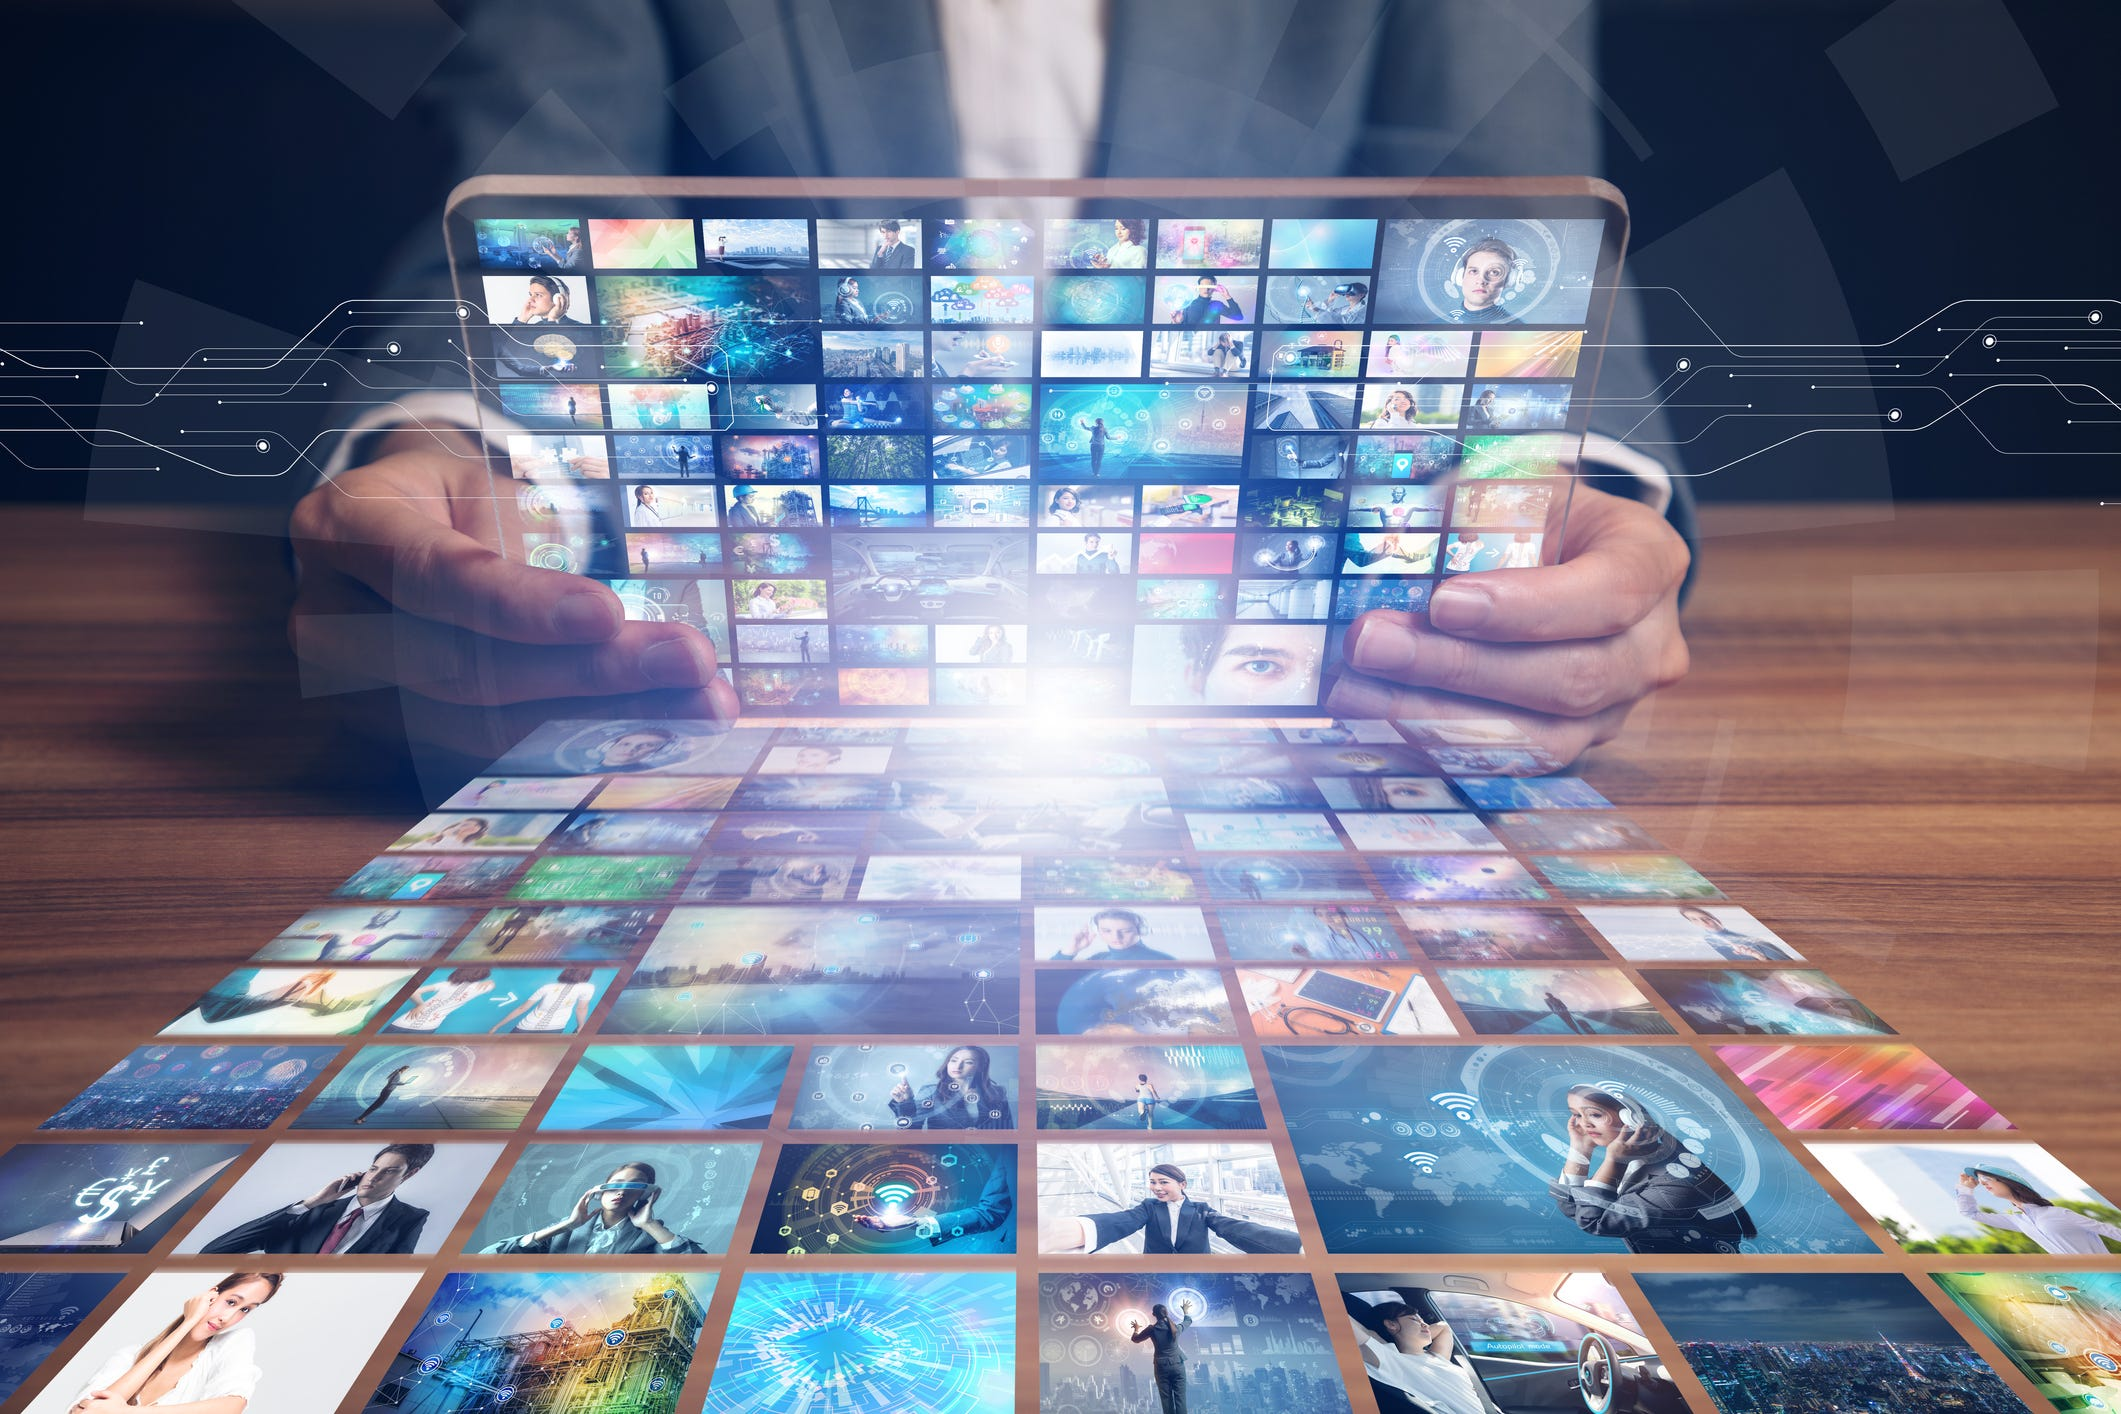 Here are 5 sites where you can get streaming TV shows, movies for free